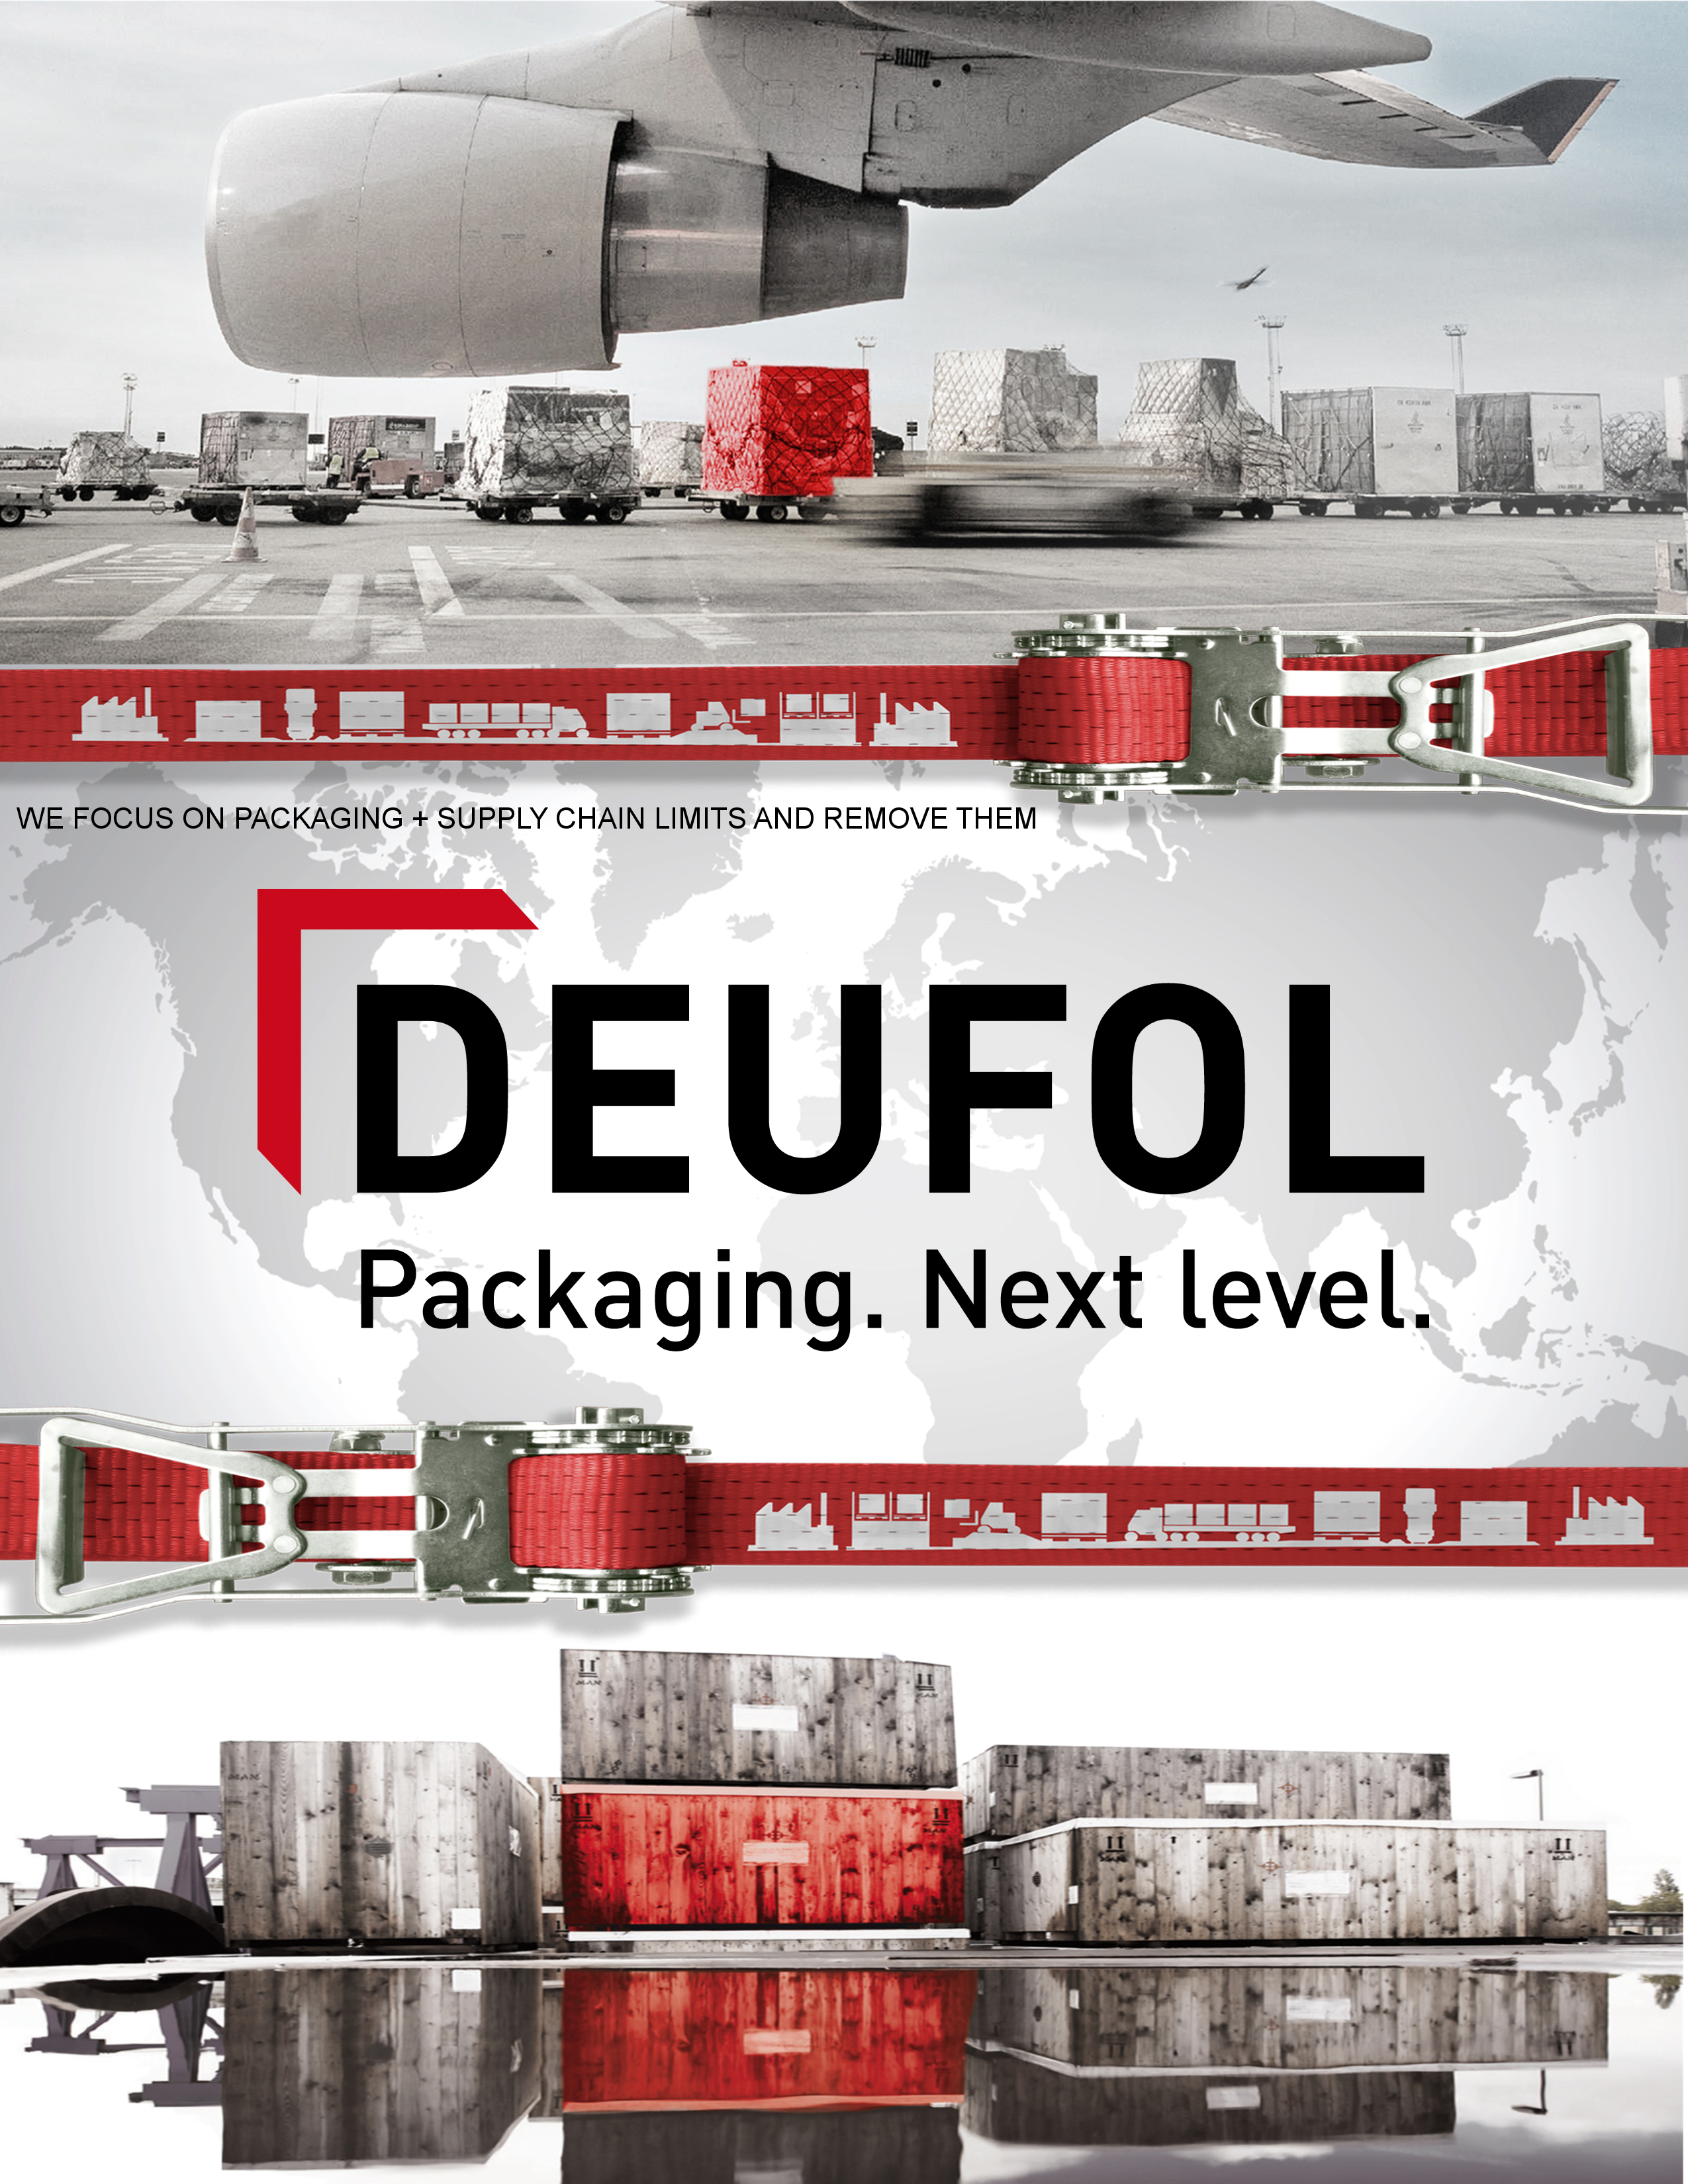 industrial packaging company should be a true partner, and that's what you'll get when you work with Deufol